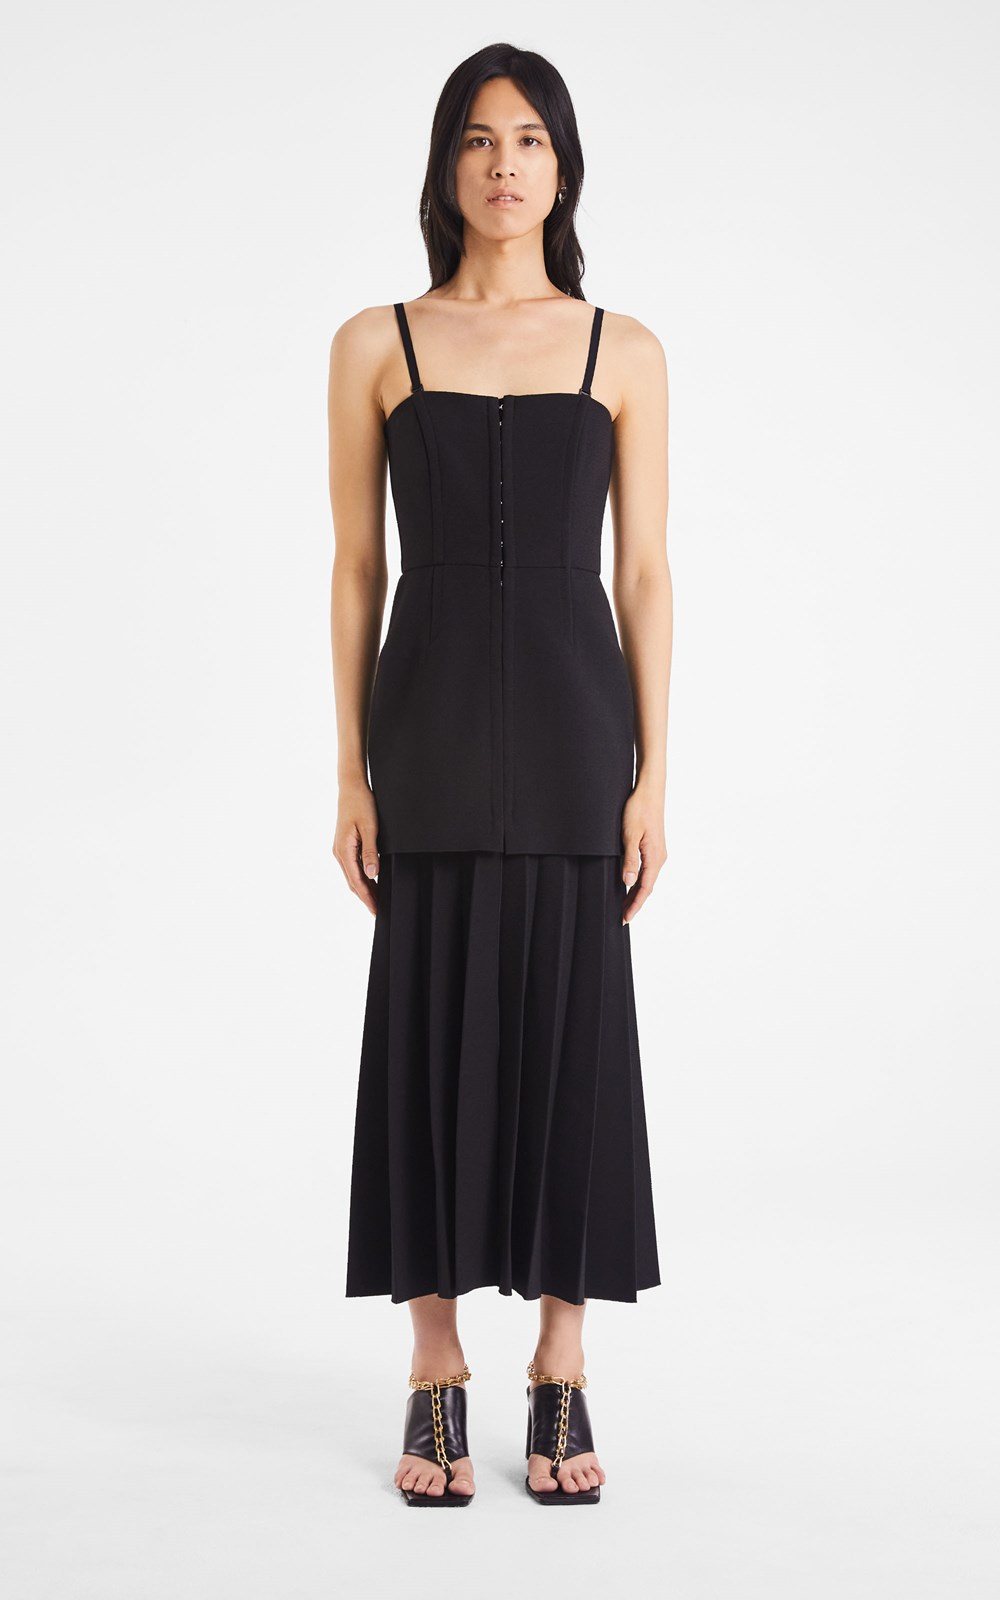 Dresses | HOOK & EYE PLEAT CREPE DRESS